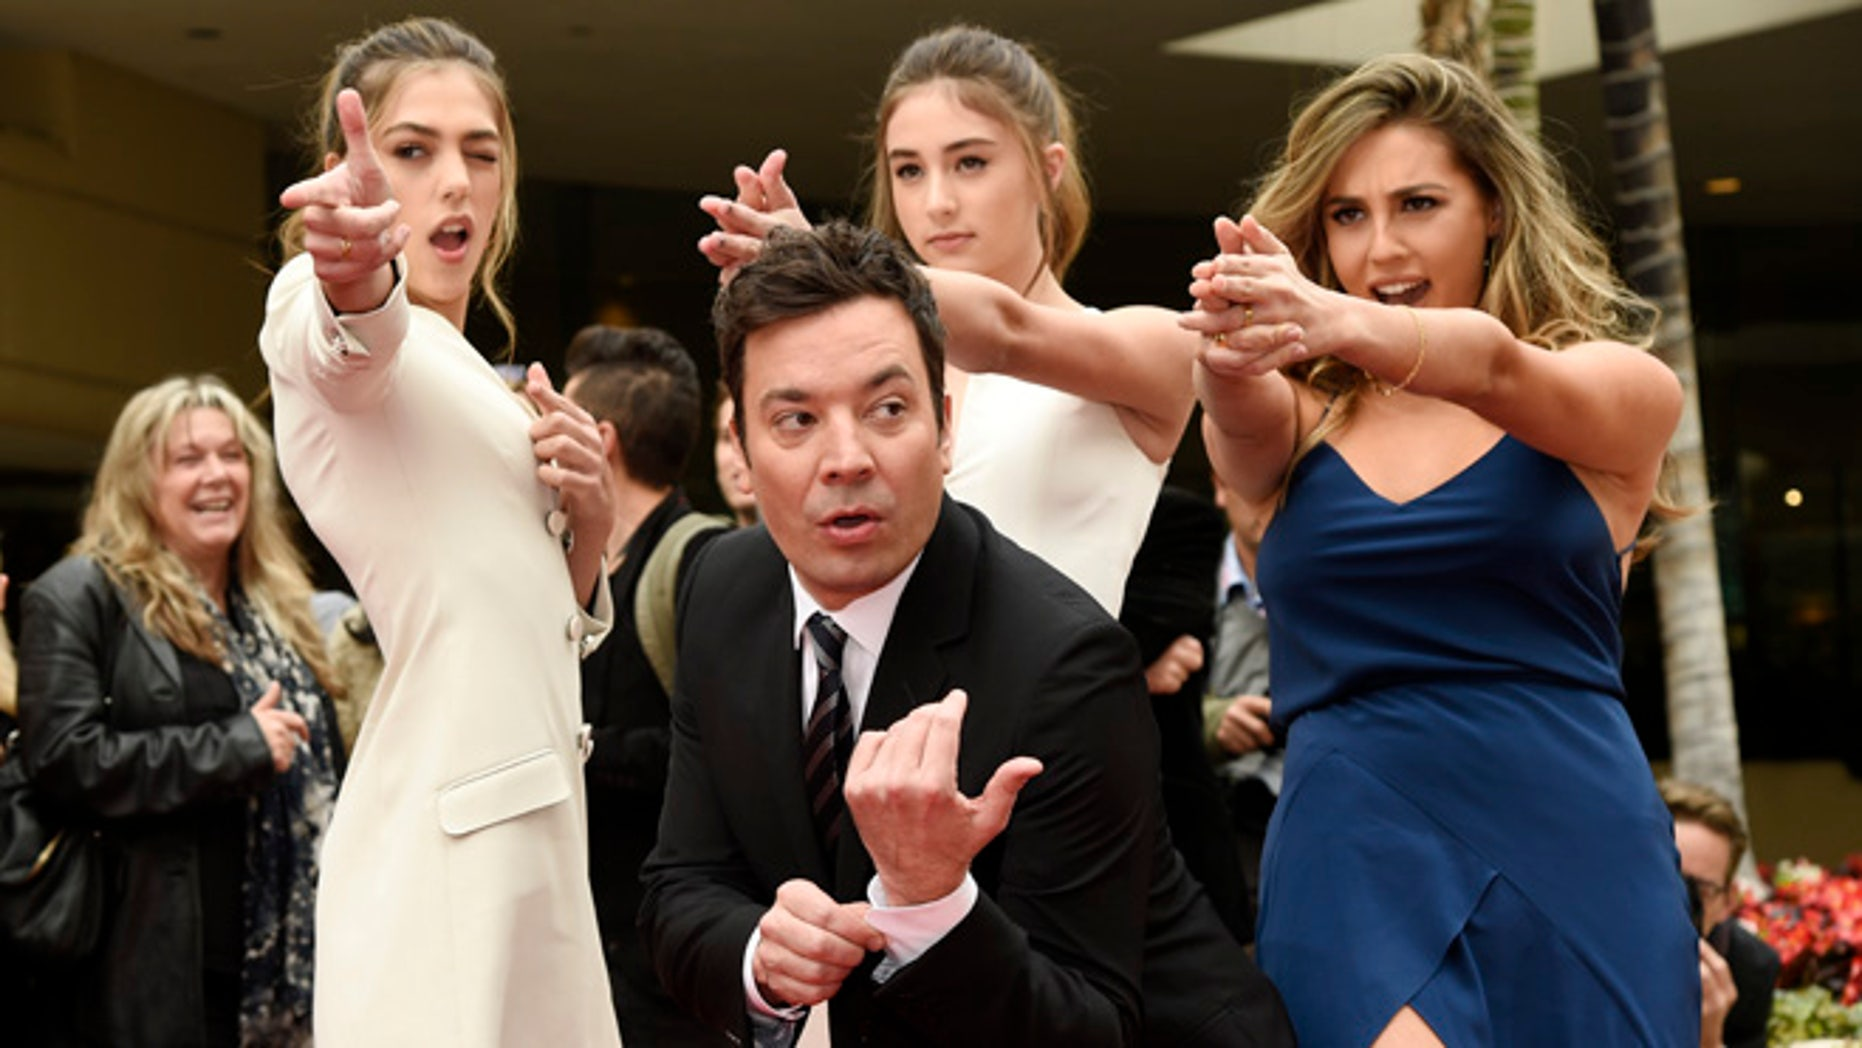 Jimmy Fallon will be hosting this year's Golden Globes ceremony.